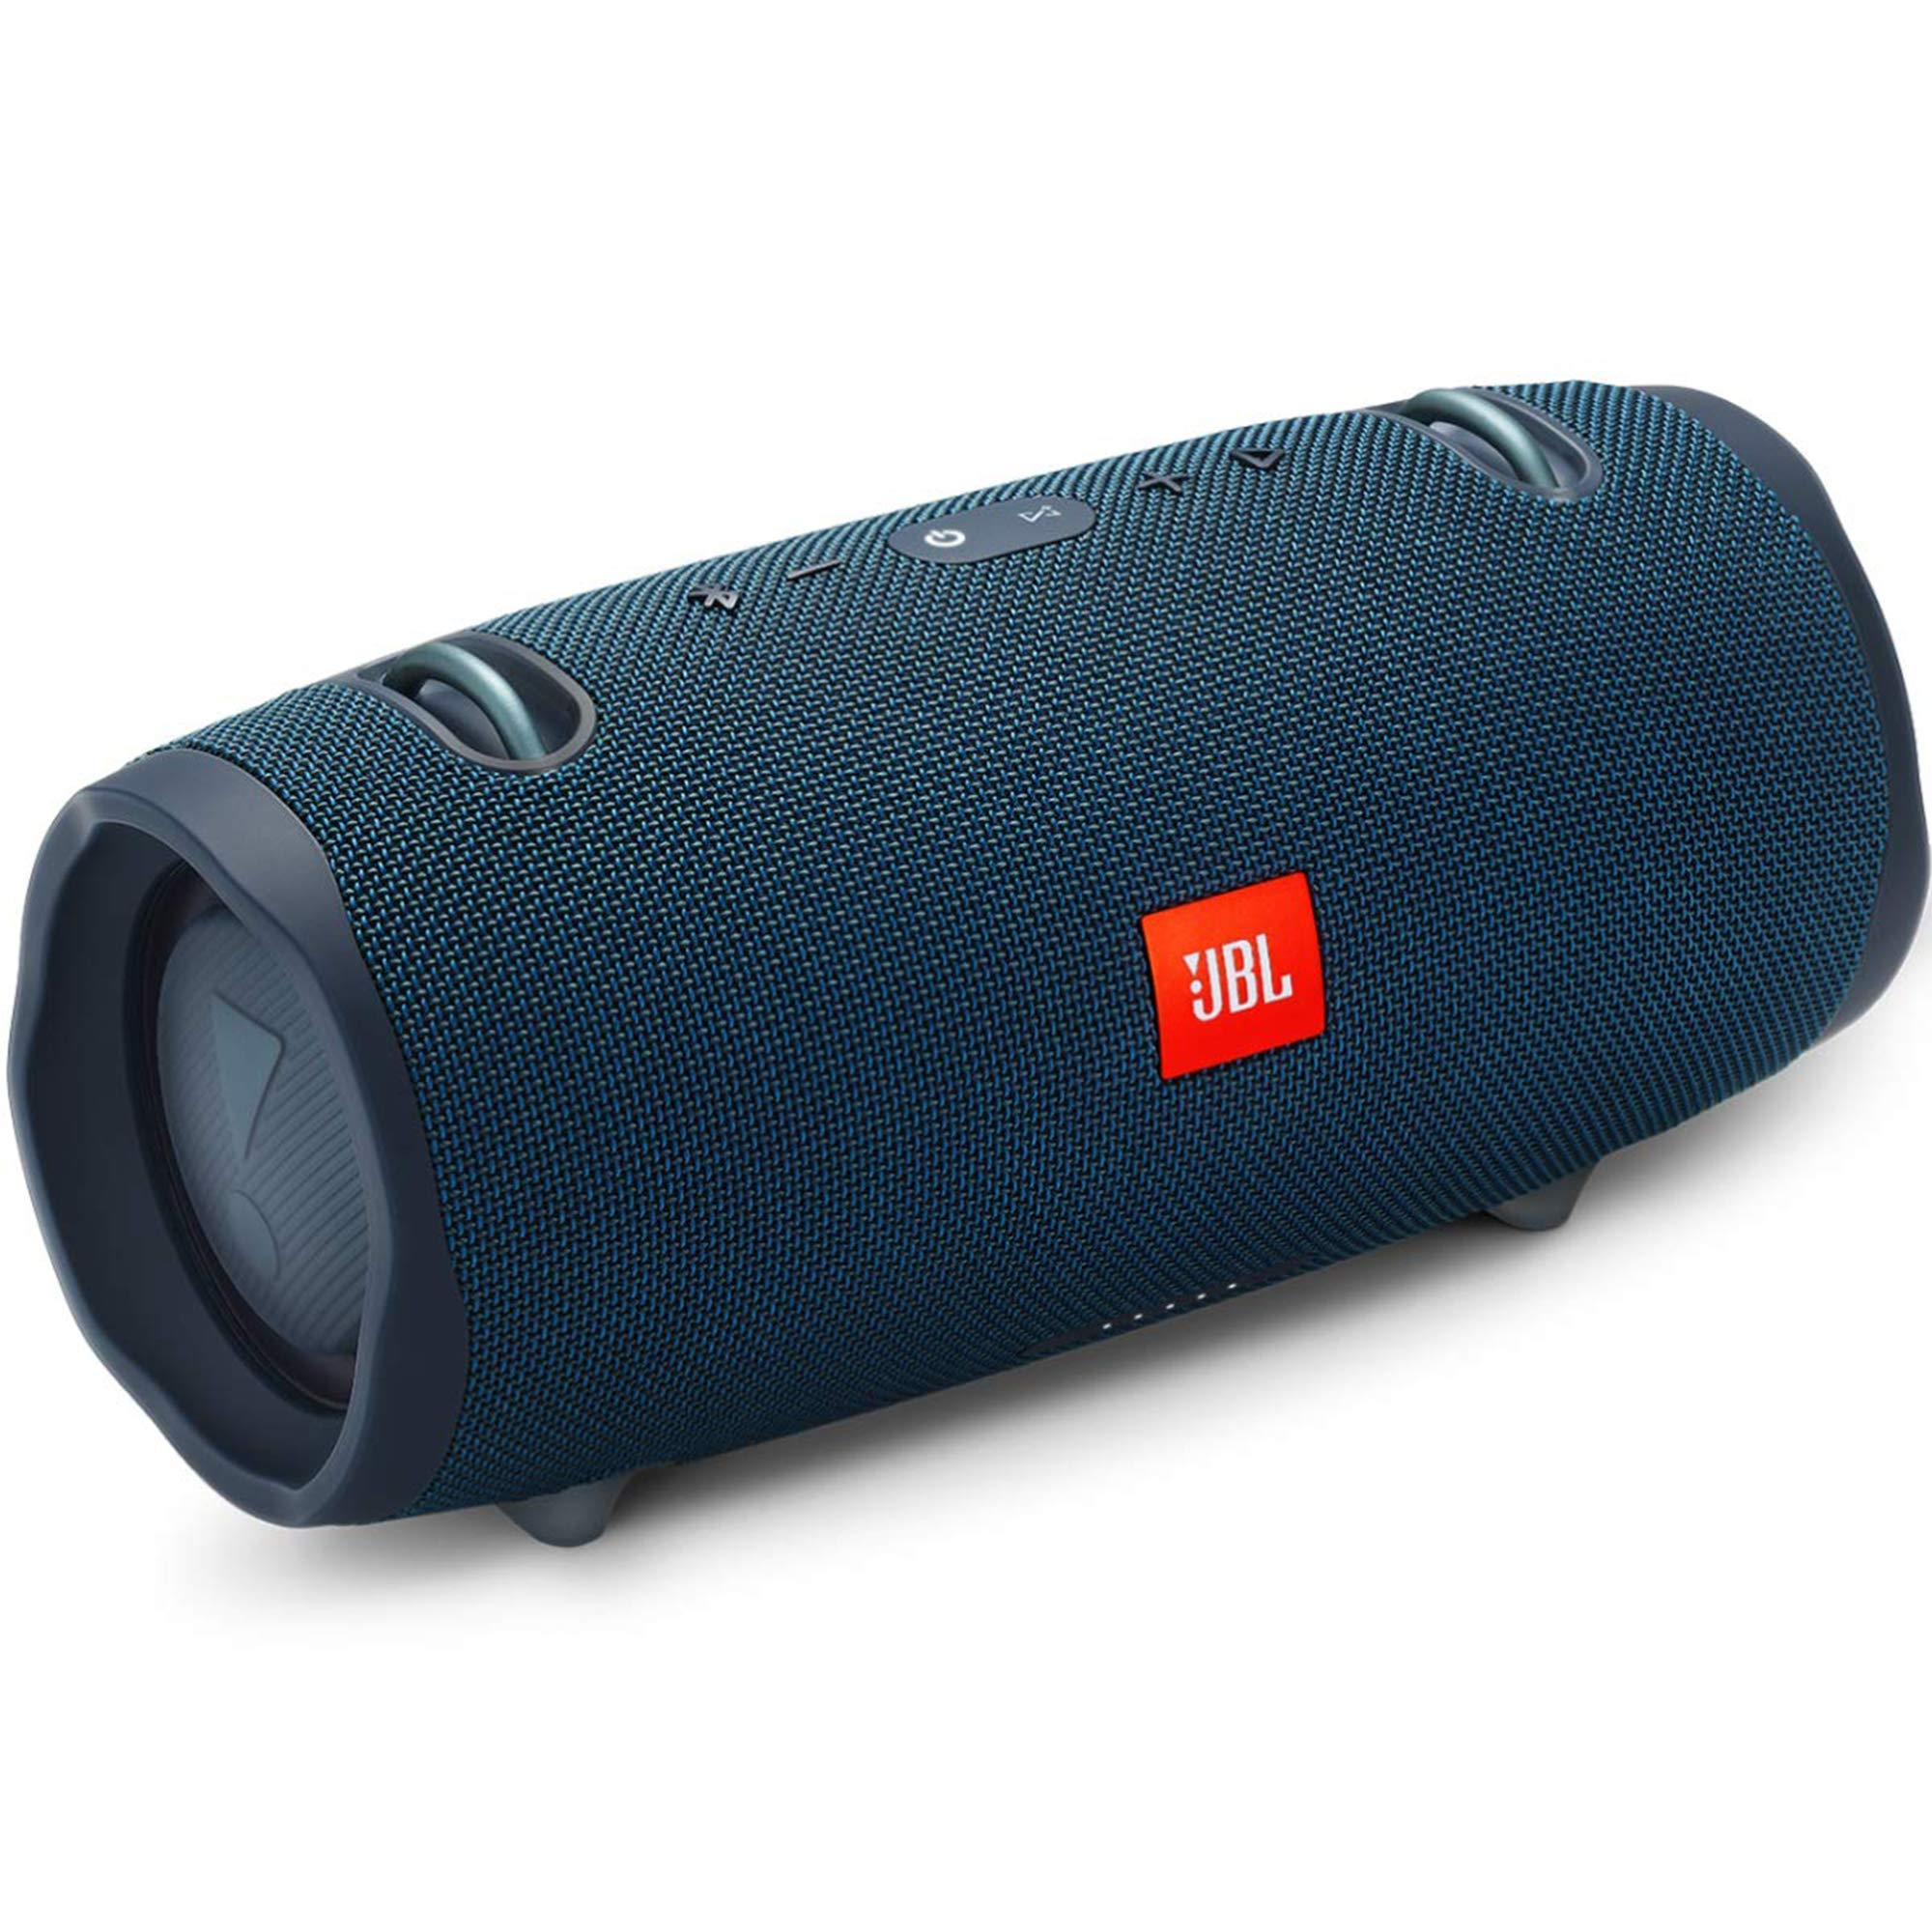 JBL Xtreme 2 Portable Waterproof Wireless Bluetooth Speaker - Blue (Renewed) by JBL